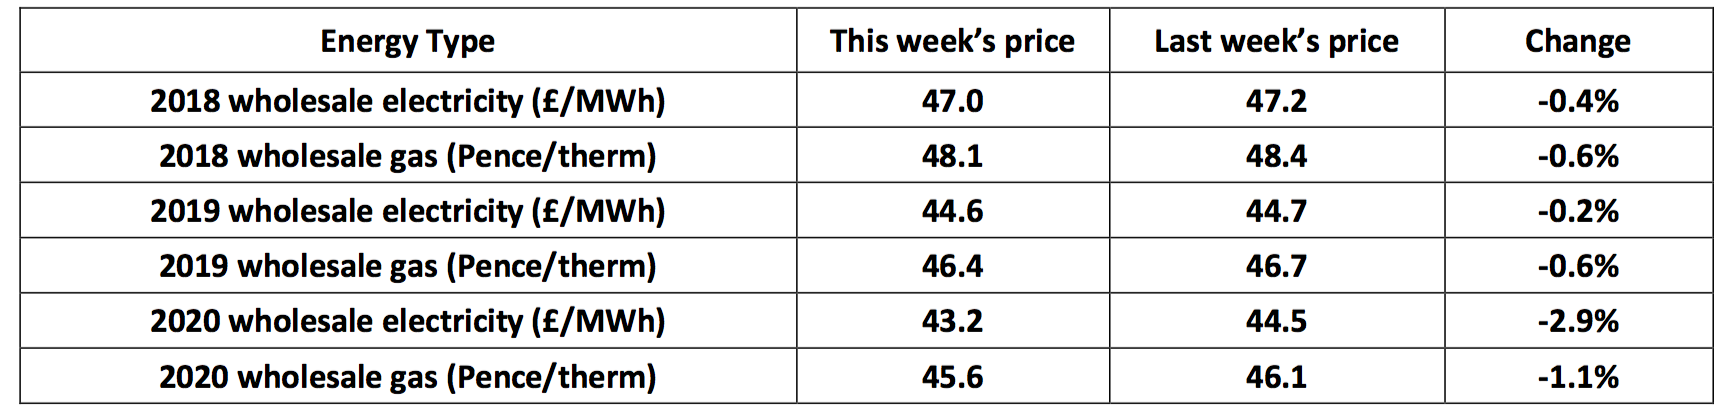 UK energy prices 22nd November 2017